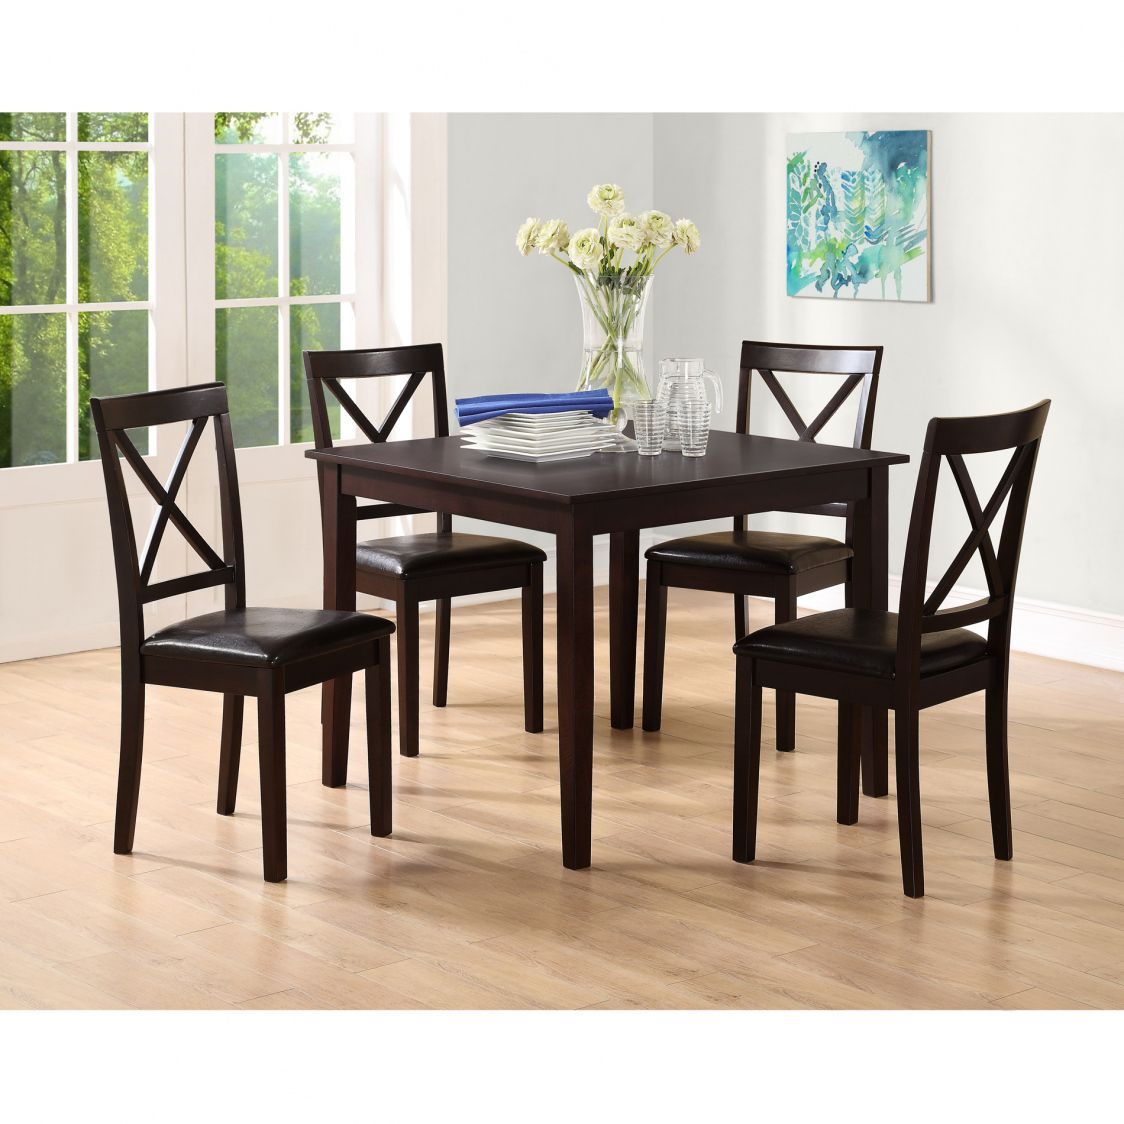 Kmart Dining Room Set  Best Office Furniture Check More At Http Prepossessing Kmart Dining Room Set Review